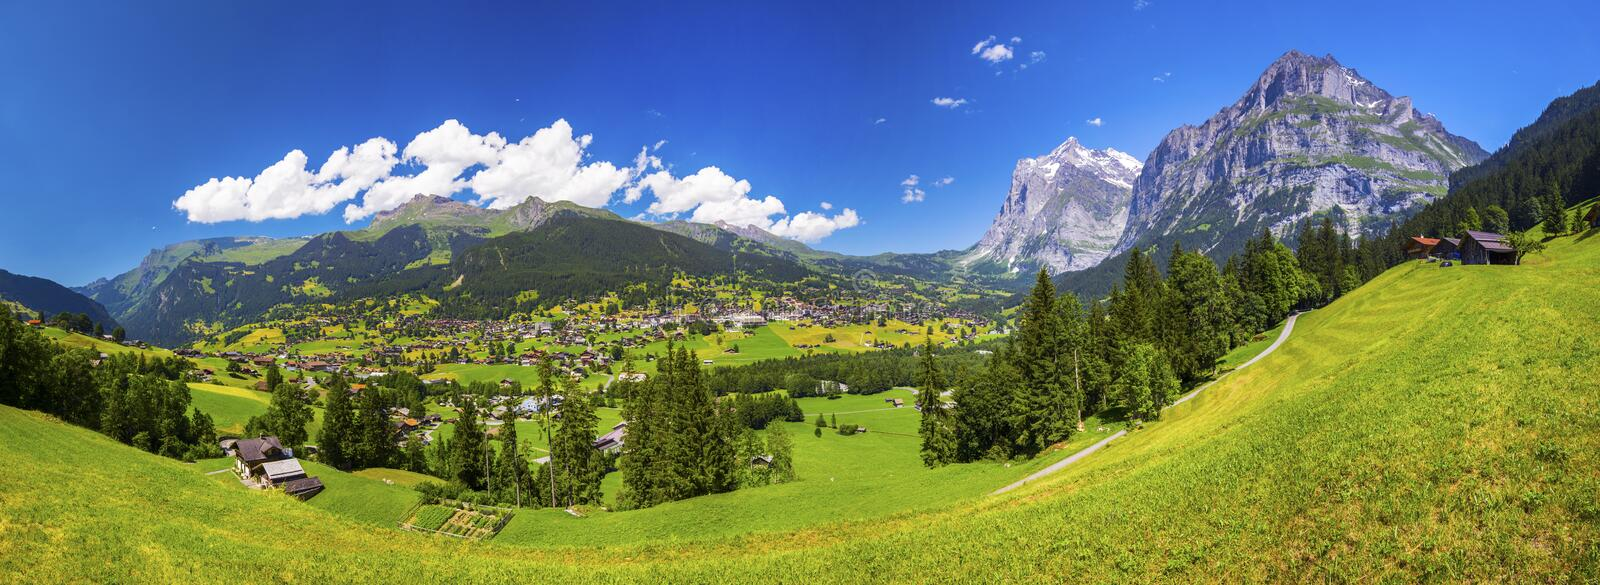 Famous Grindelwald valley, green forest, Alps chalets and Swiss Alps, Berner Oberland, Switzerland. Panorama view to famous Grindelwald valley, green forest royalty free stock photography